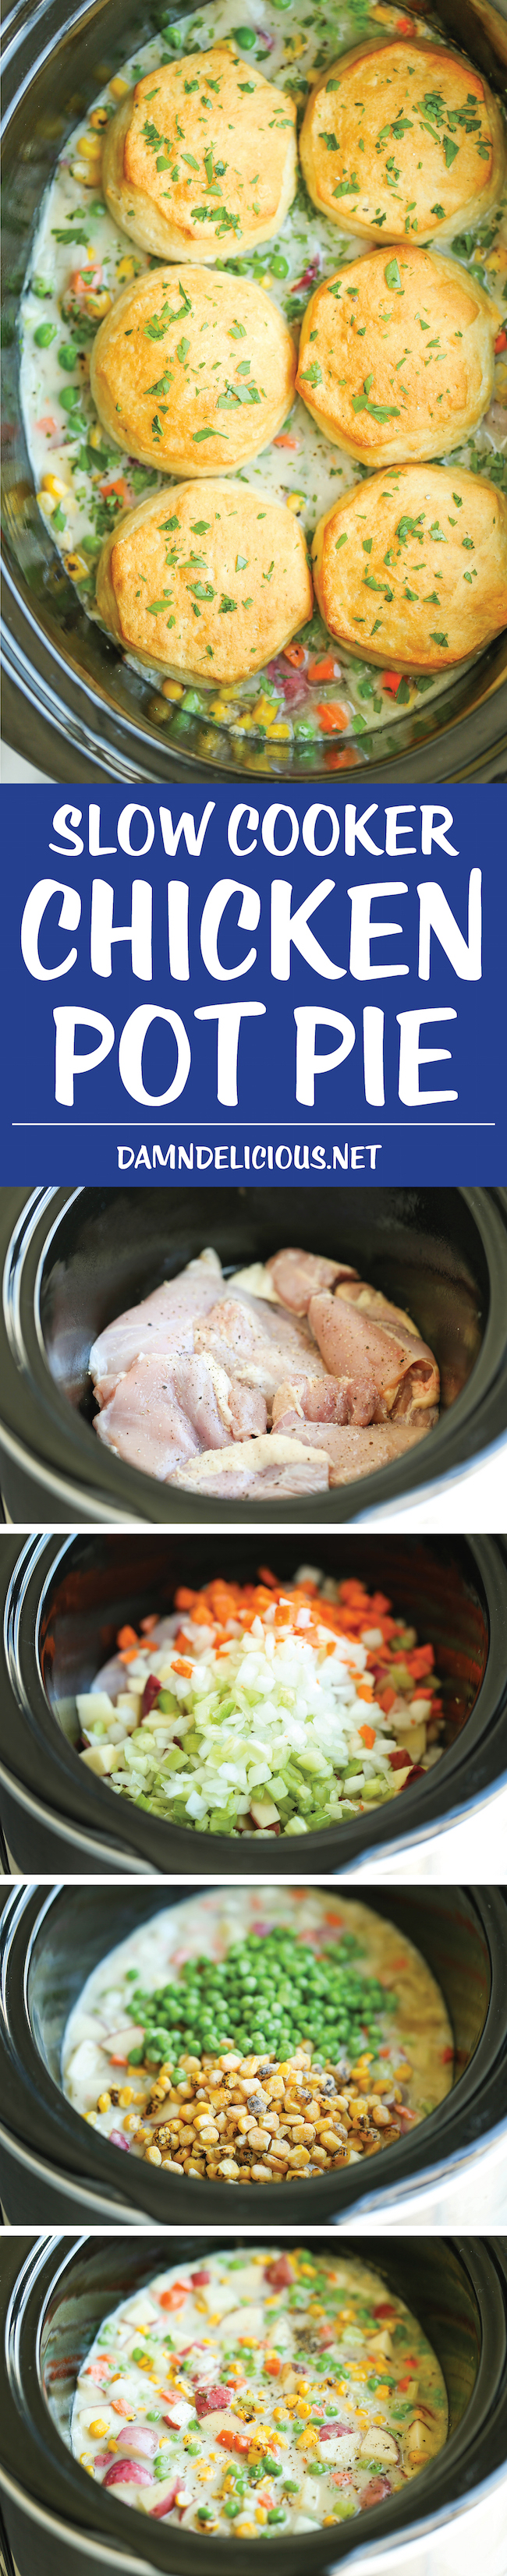 Slow Cooker Chicken Pot Pie - The easiest pot pie recipe ever made right in the crockpot from scratch - no condensed cream of chicken soup here!